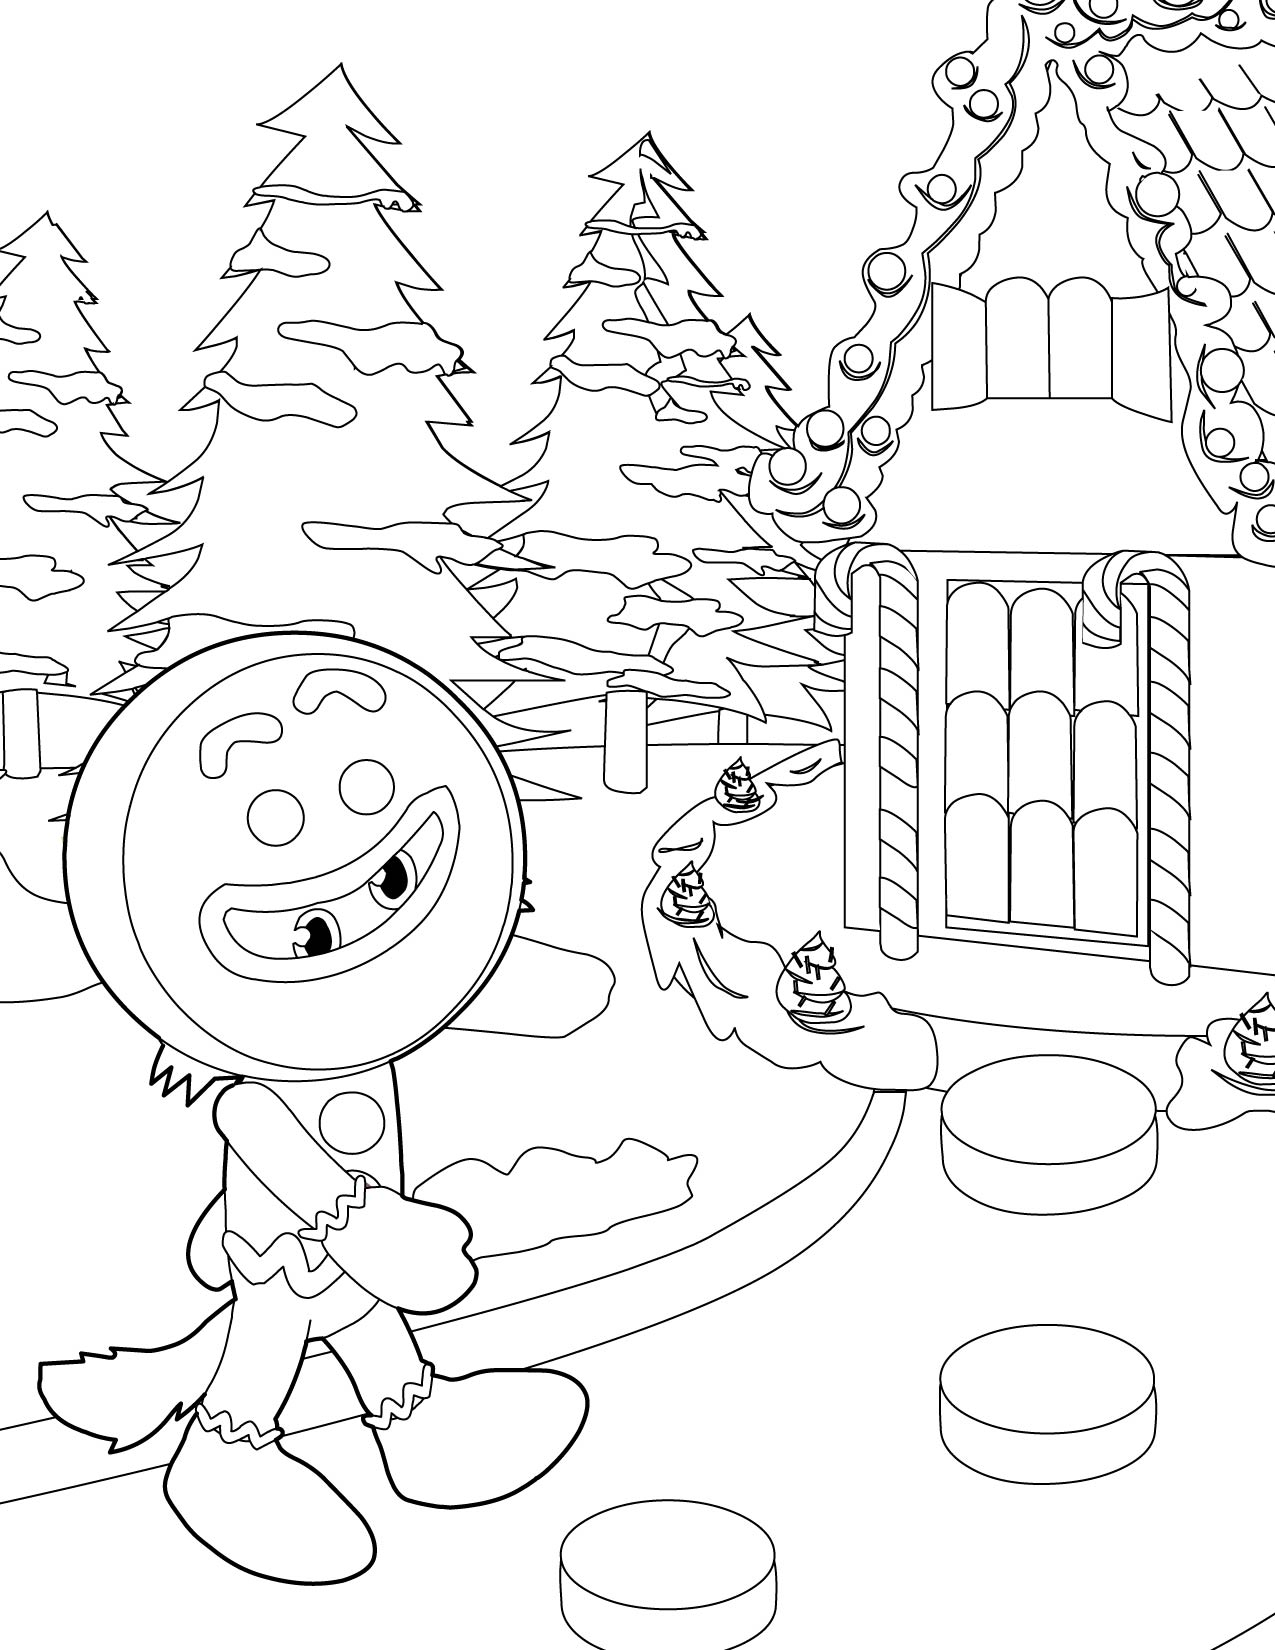 gingerbread man for coloring printable gingerbread man coloring pages for kidsfree for man coloring gingerbread